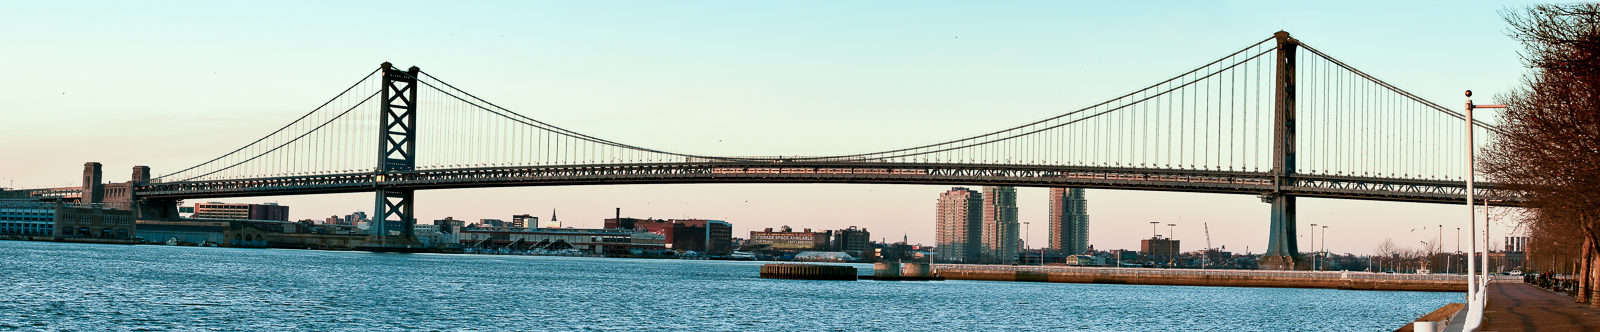 ben-franklin-bridge-pano-